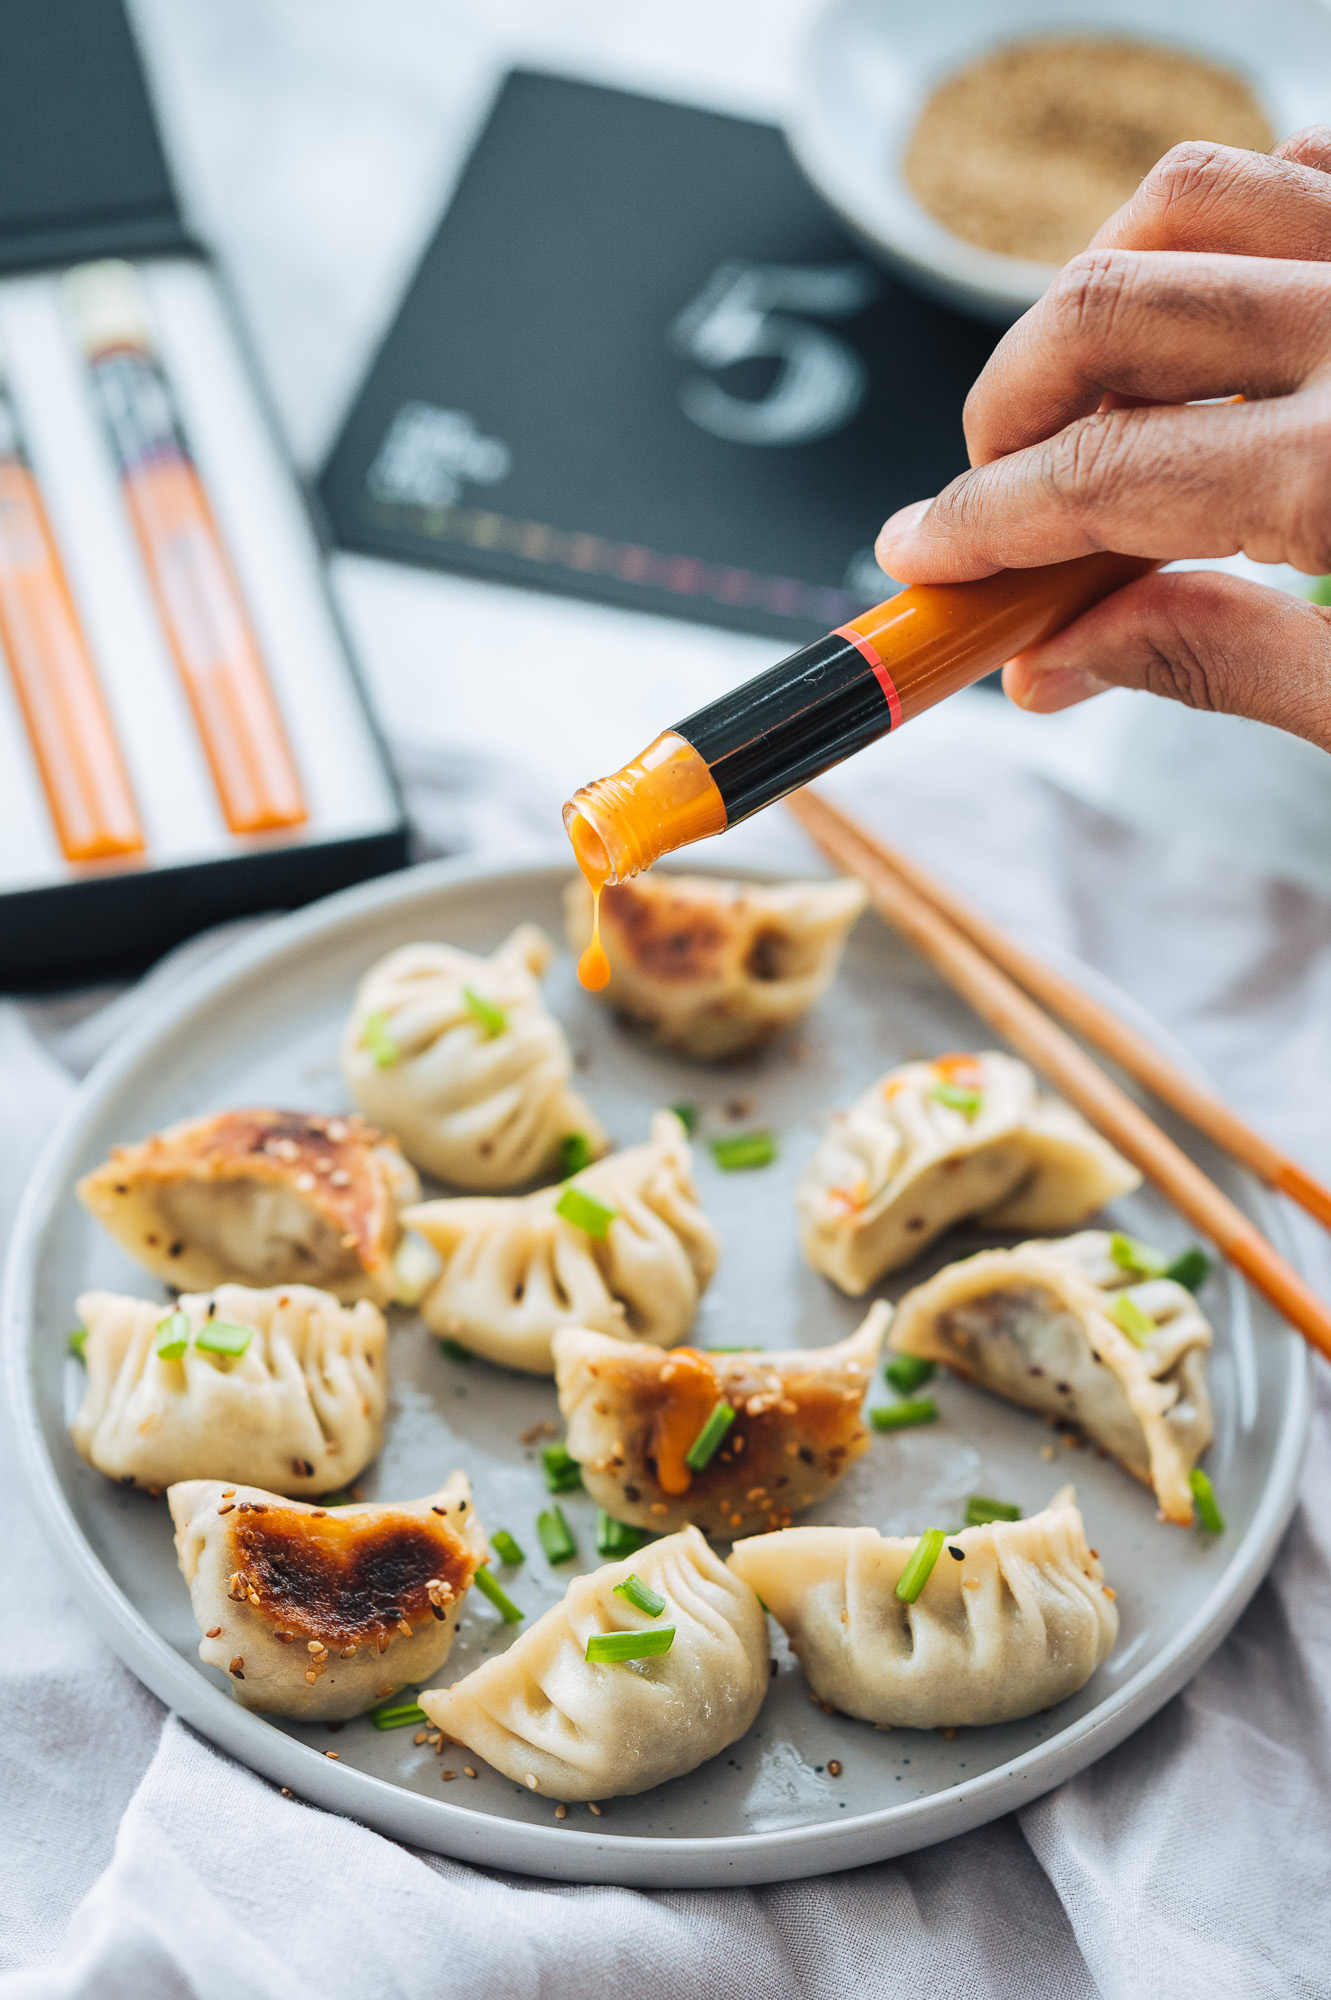 Homemade Vegetable Potstickers with red cabbage, mushrooms, garlic and ginger #mondomulia | Chilli No. 5 organic sauces are packed with superfoods